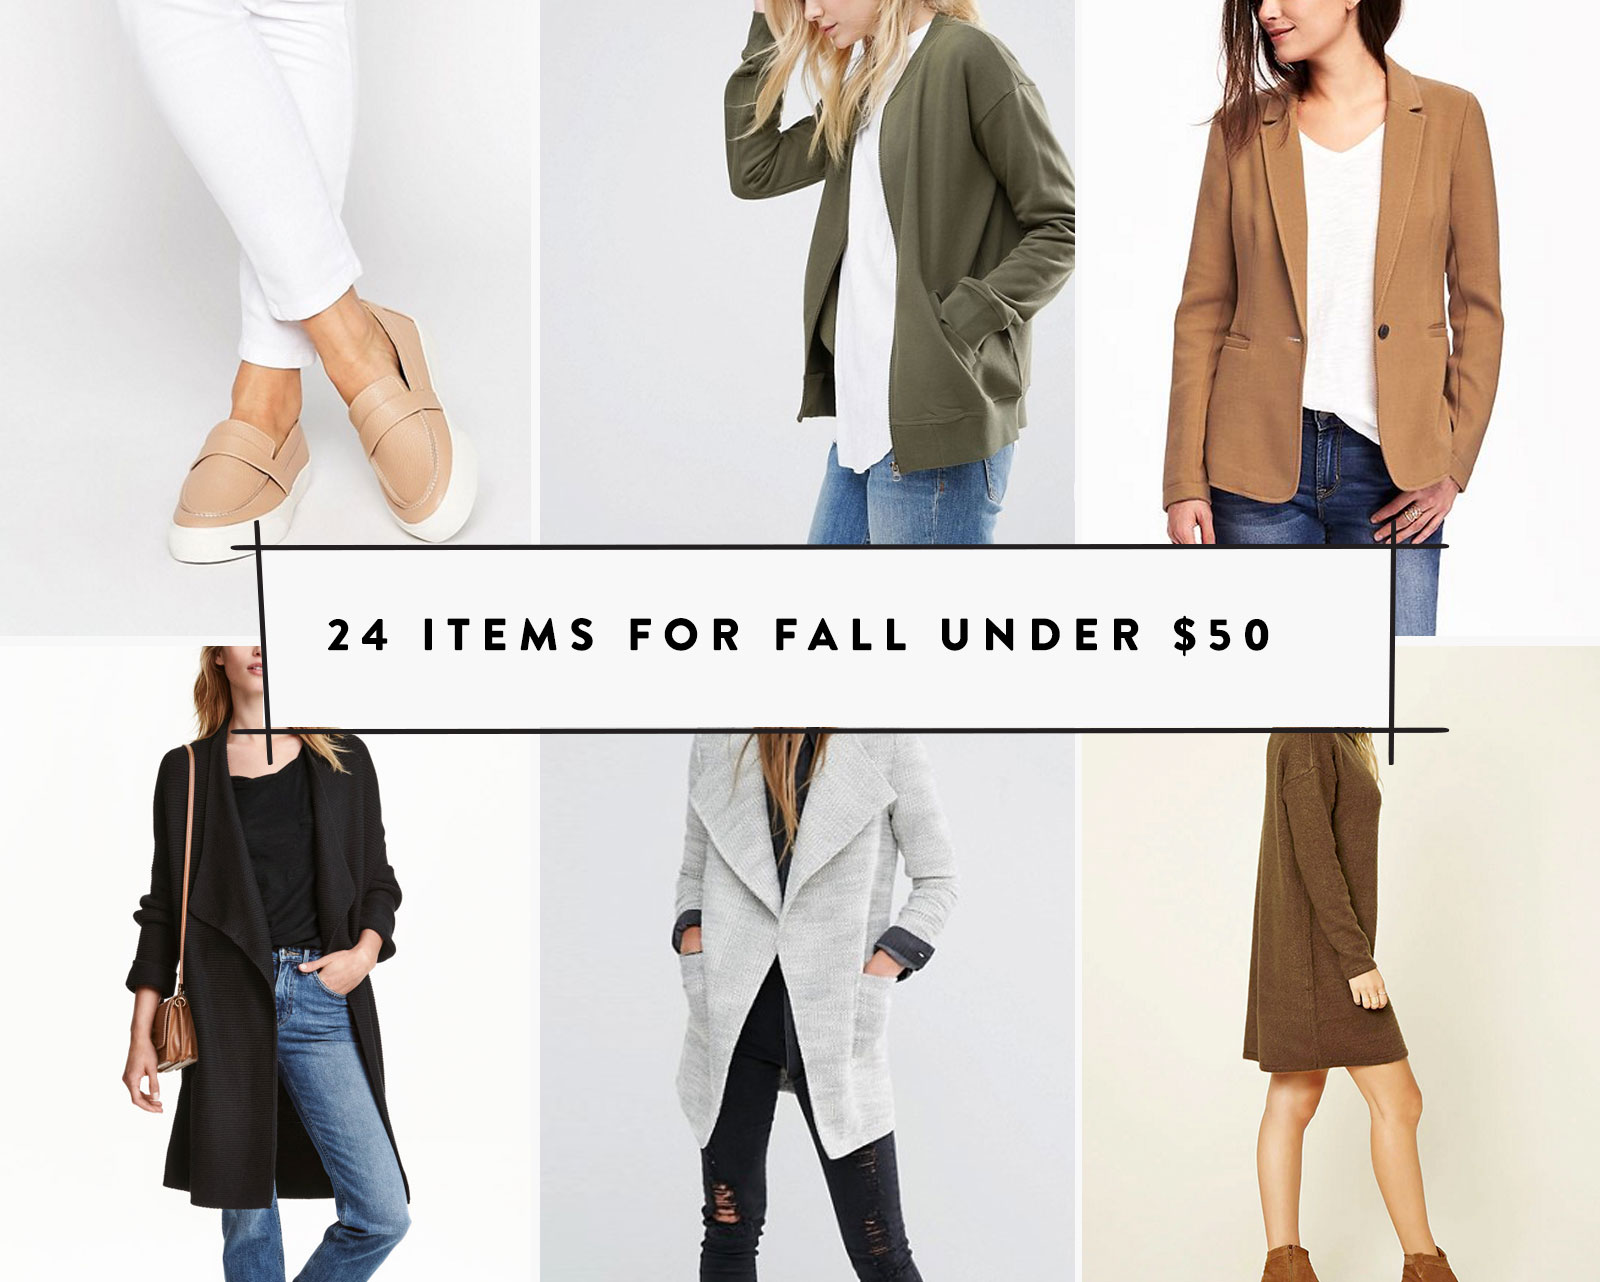 24 Items for Fall Under $50  |  The Fresh Exchange